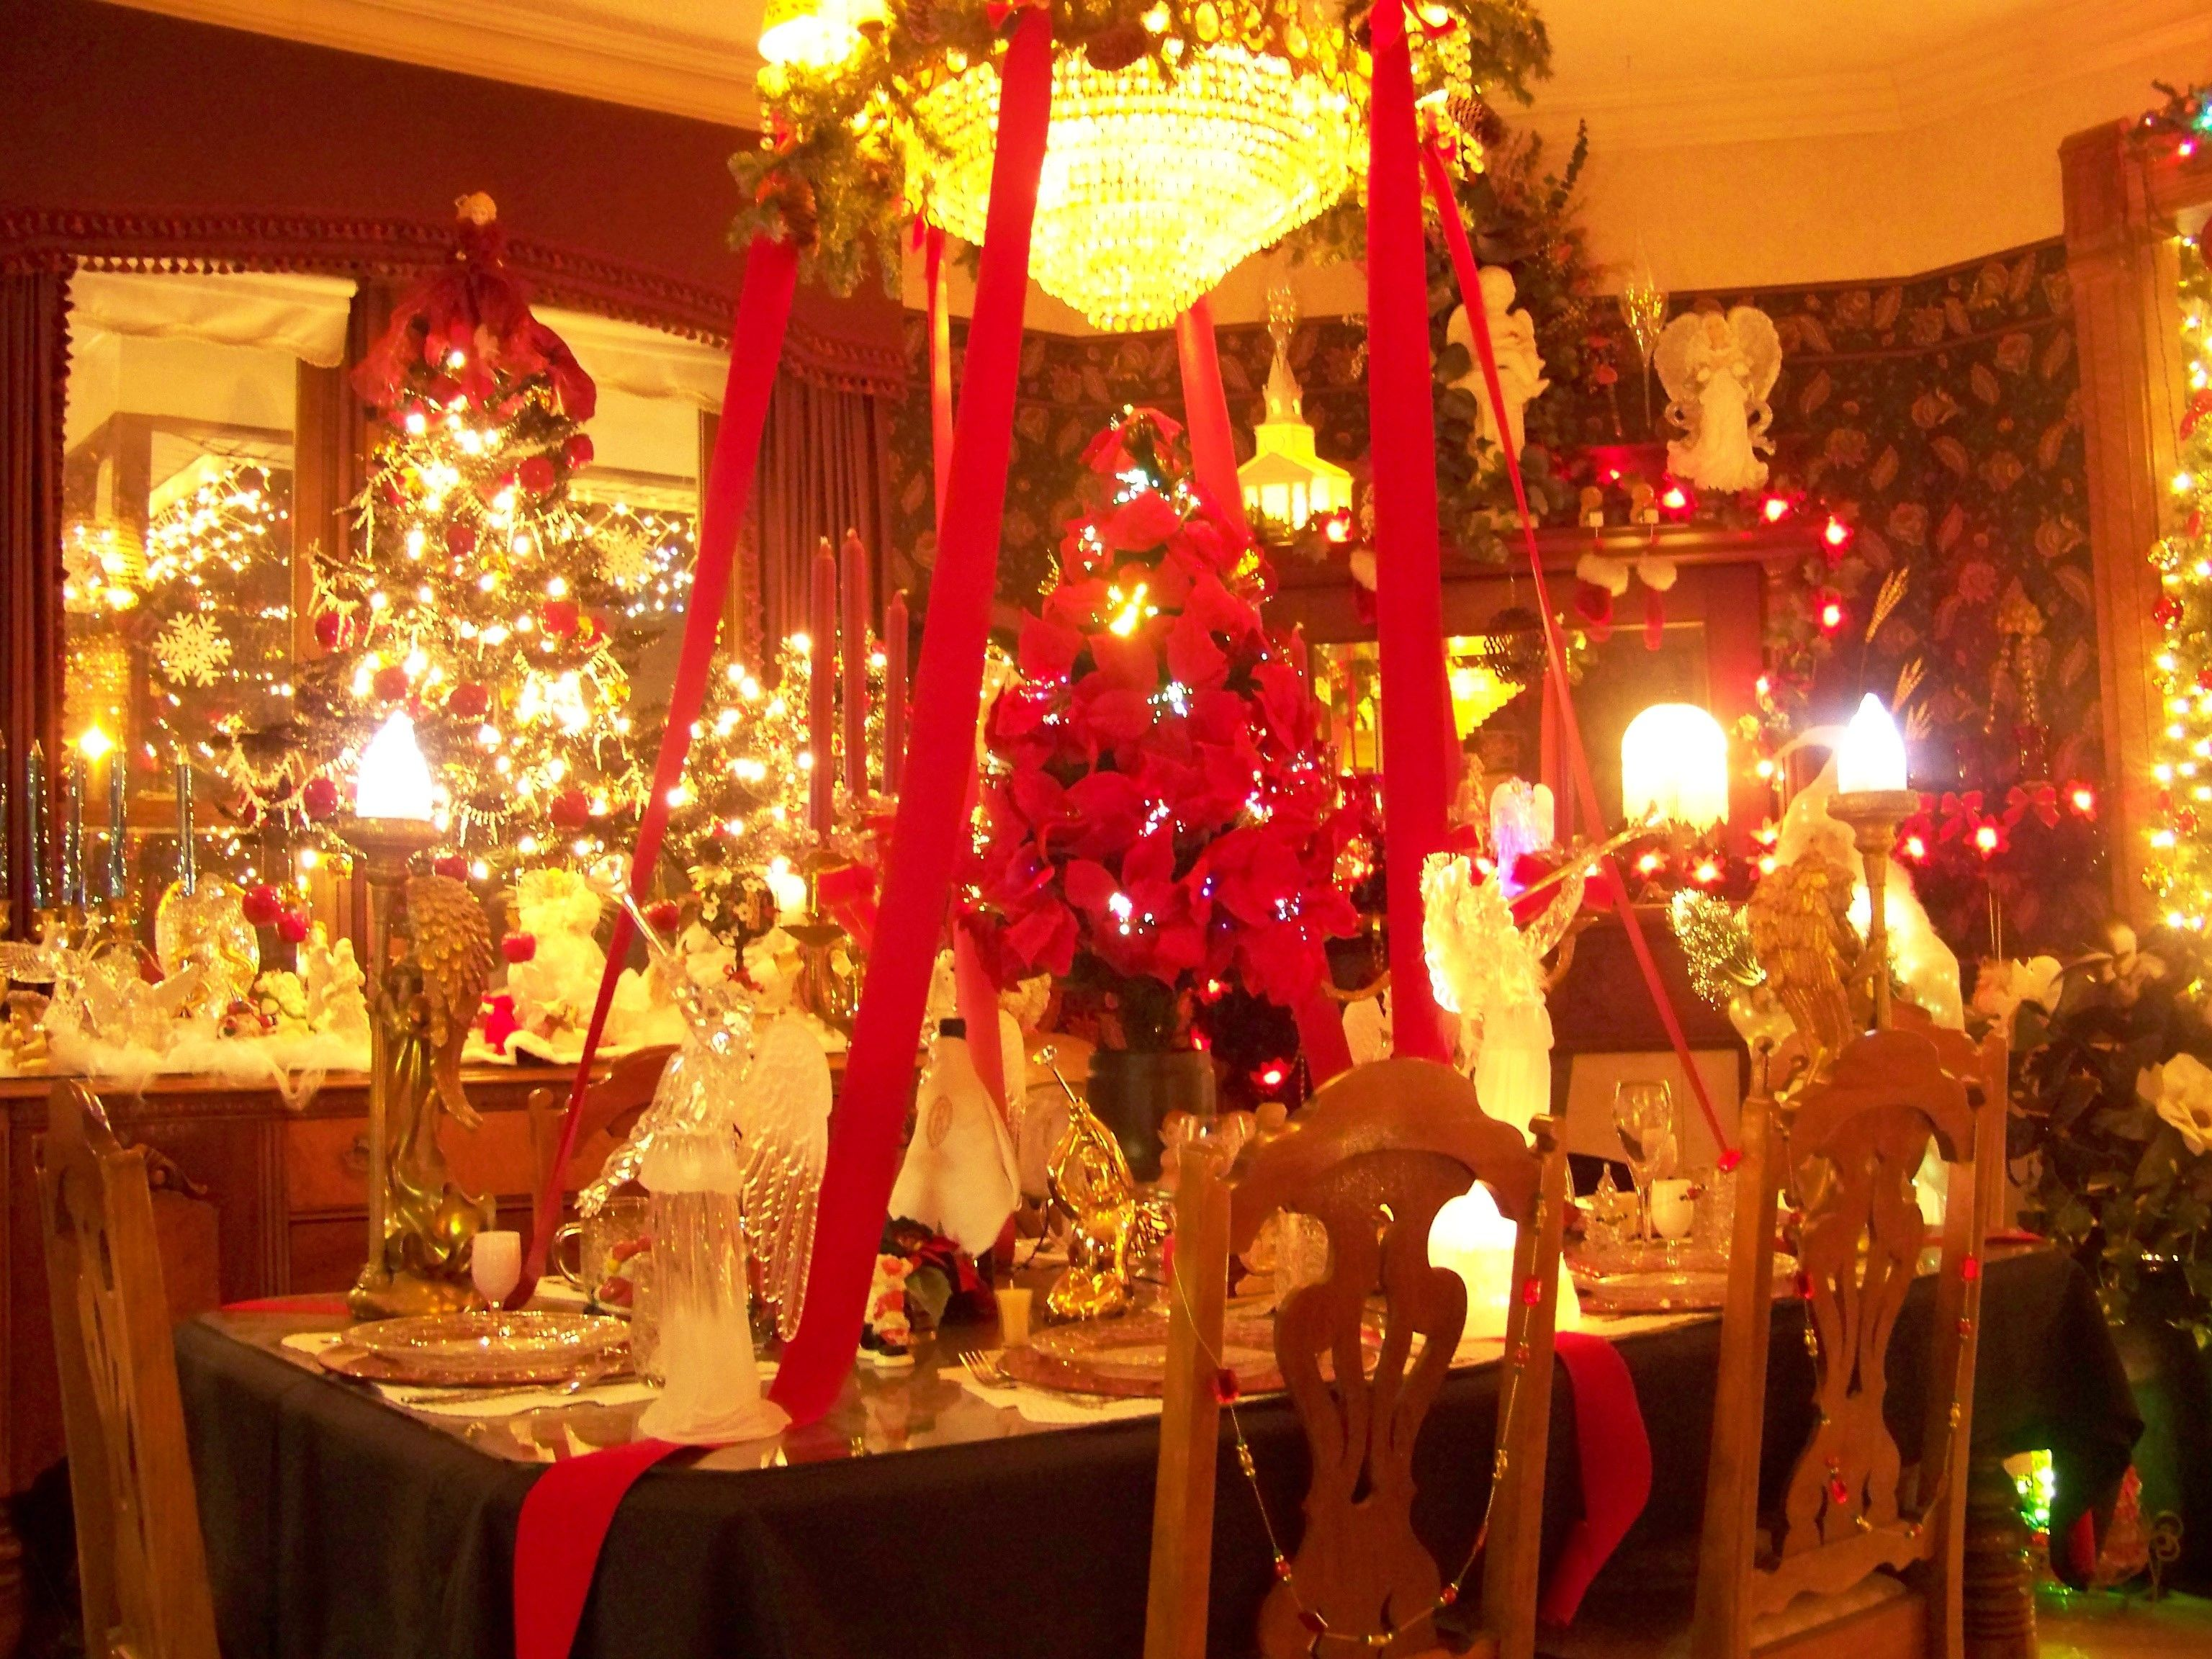 Elegant christmas table decorations - Decoration Glamoruous Red Gold Christmas Dinner Table